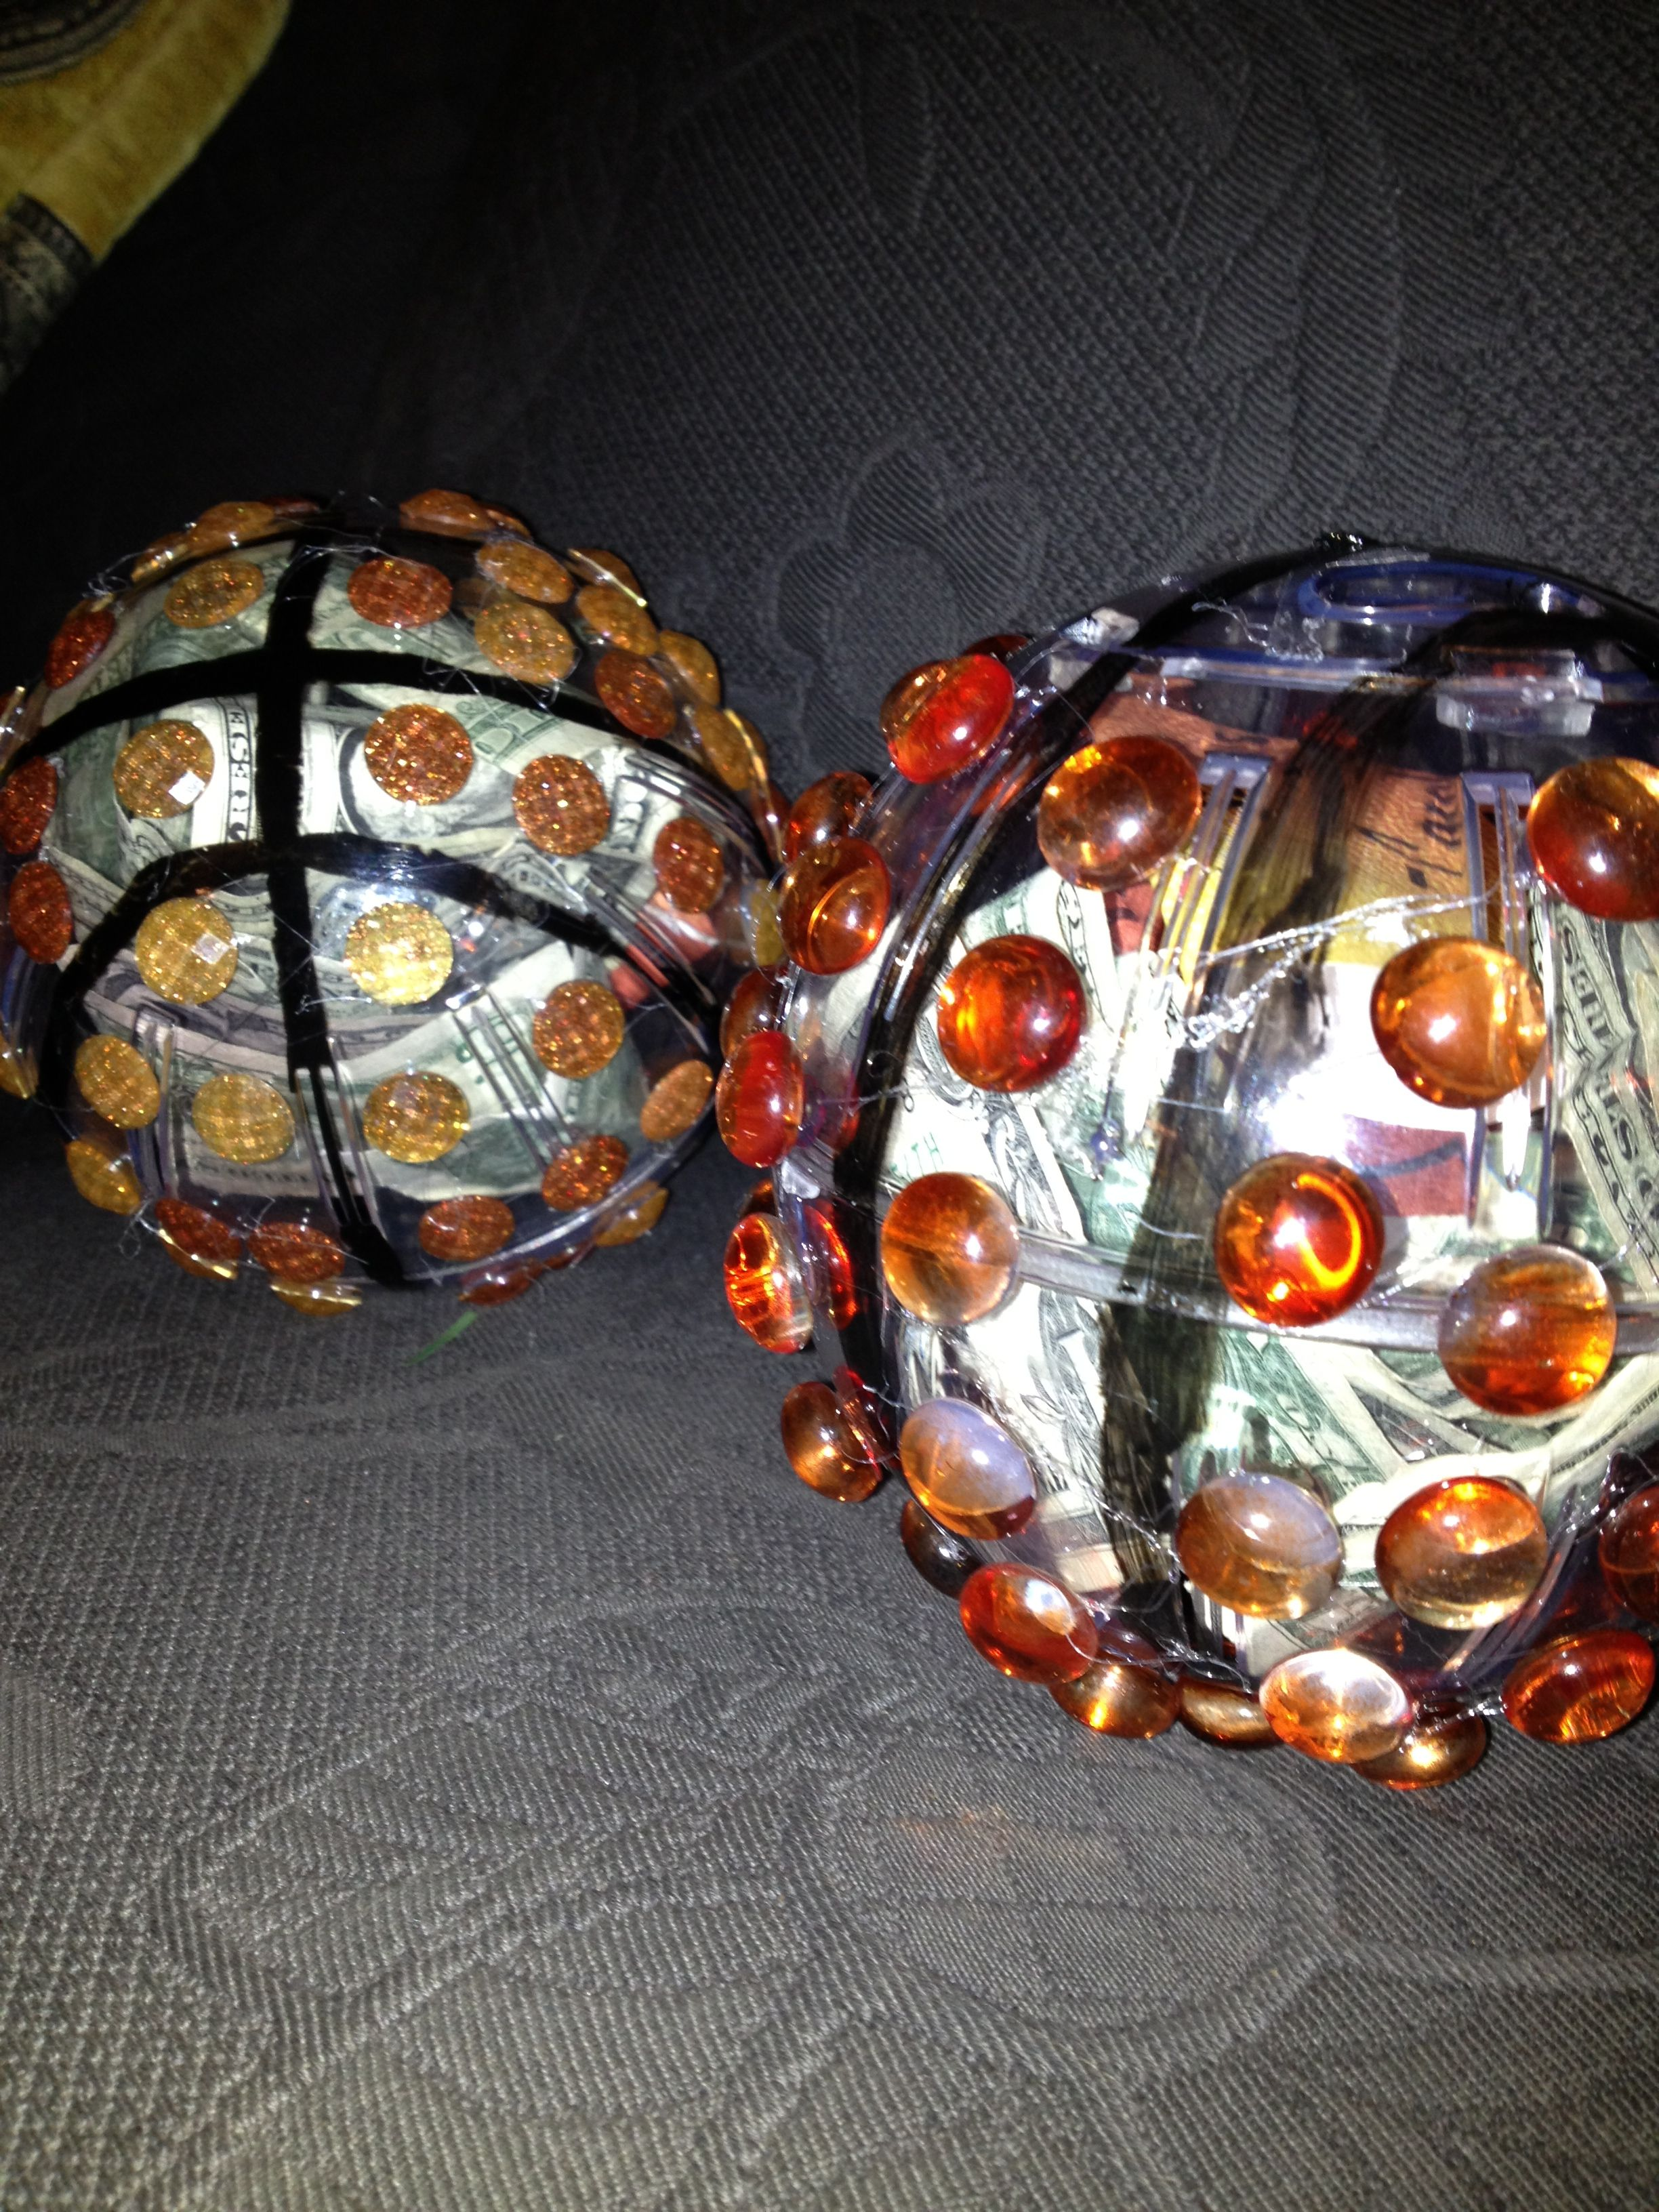 Basketball coaches gifts hamster ball decorated and filled with